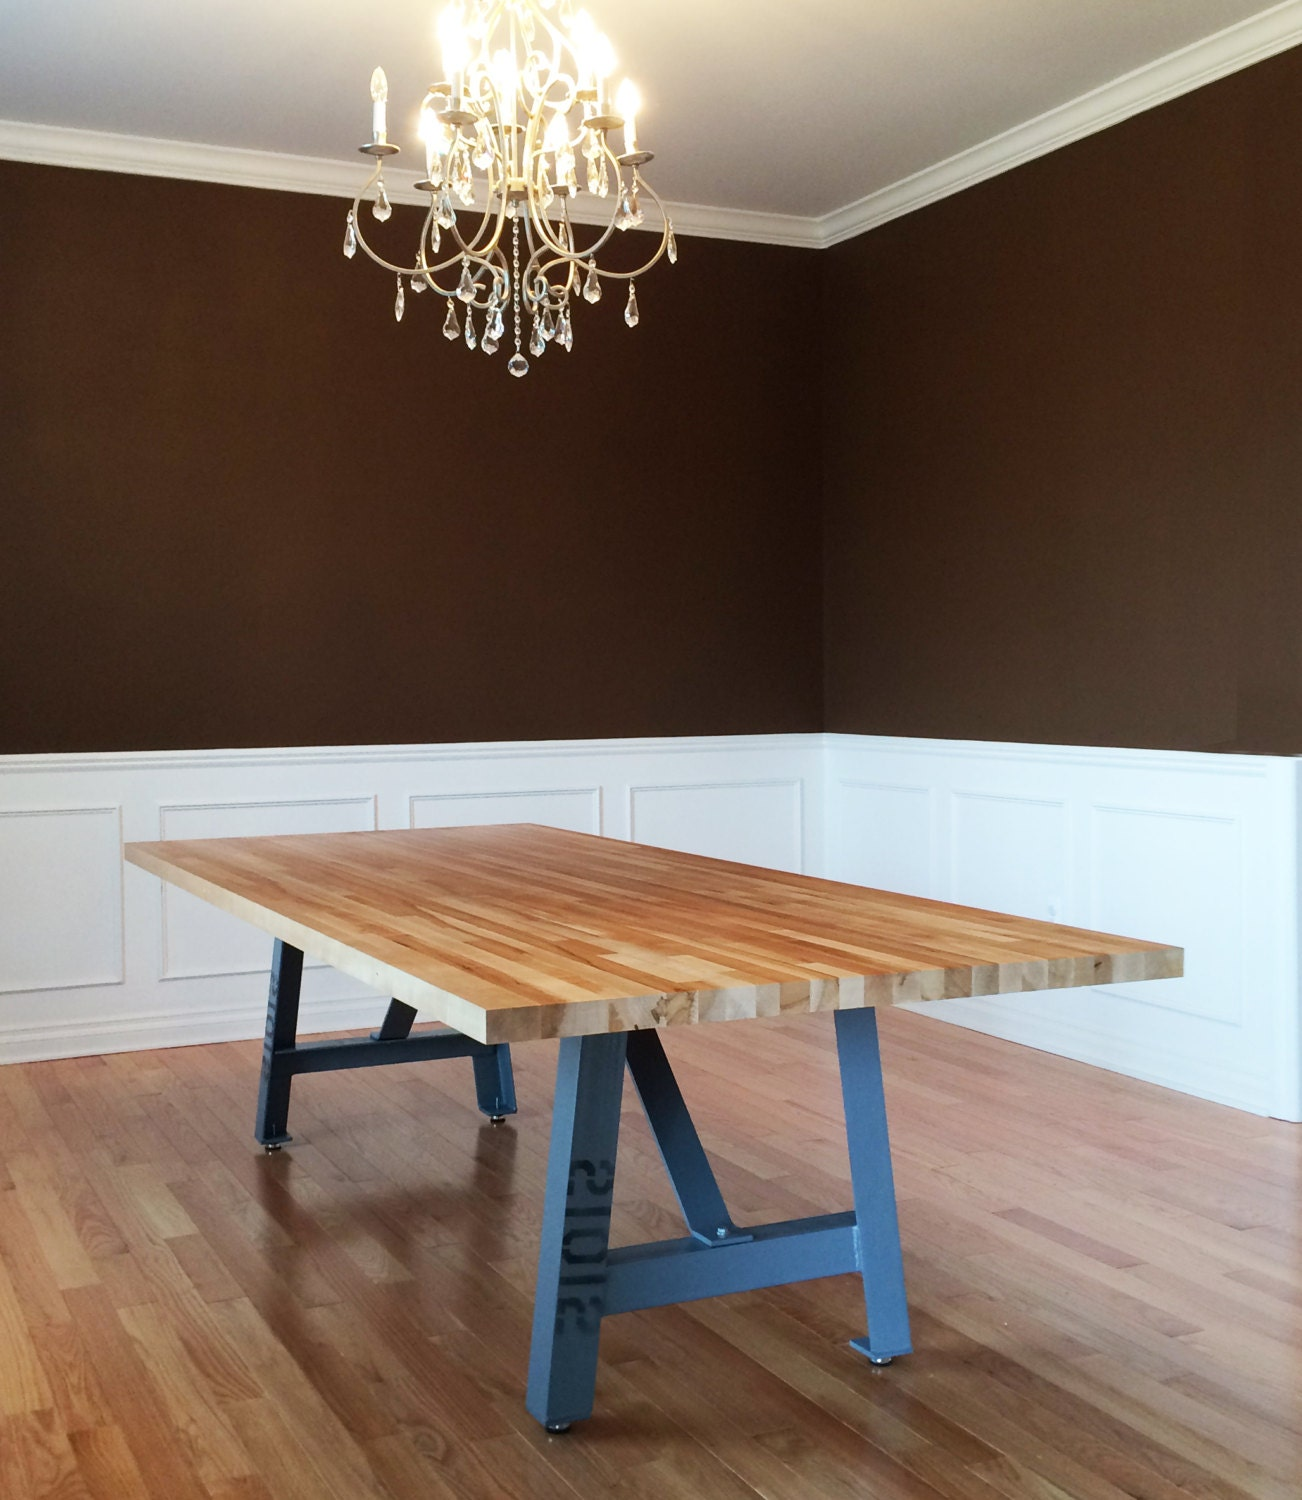 12 39 industrial dining table butcher block top